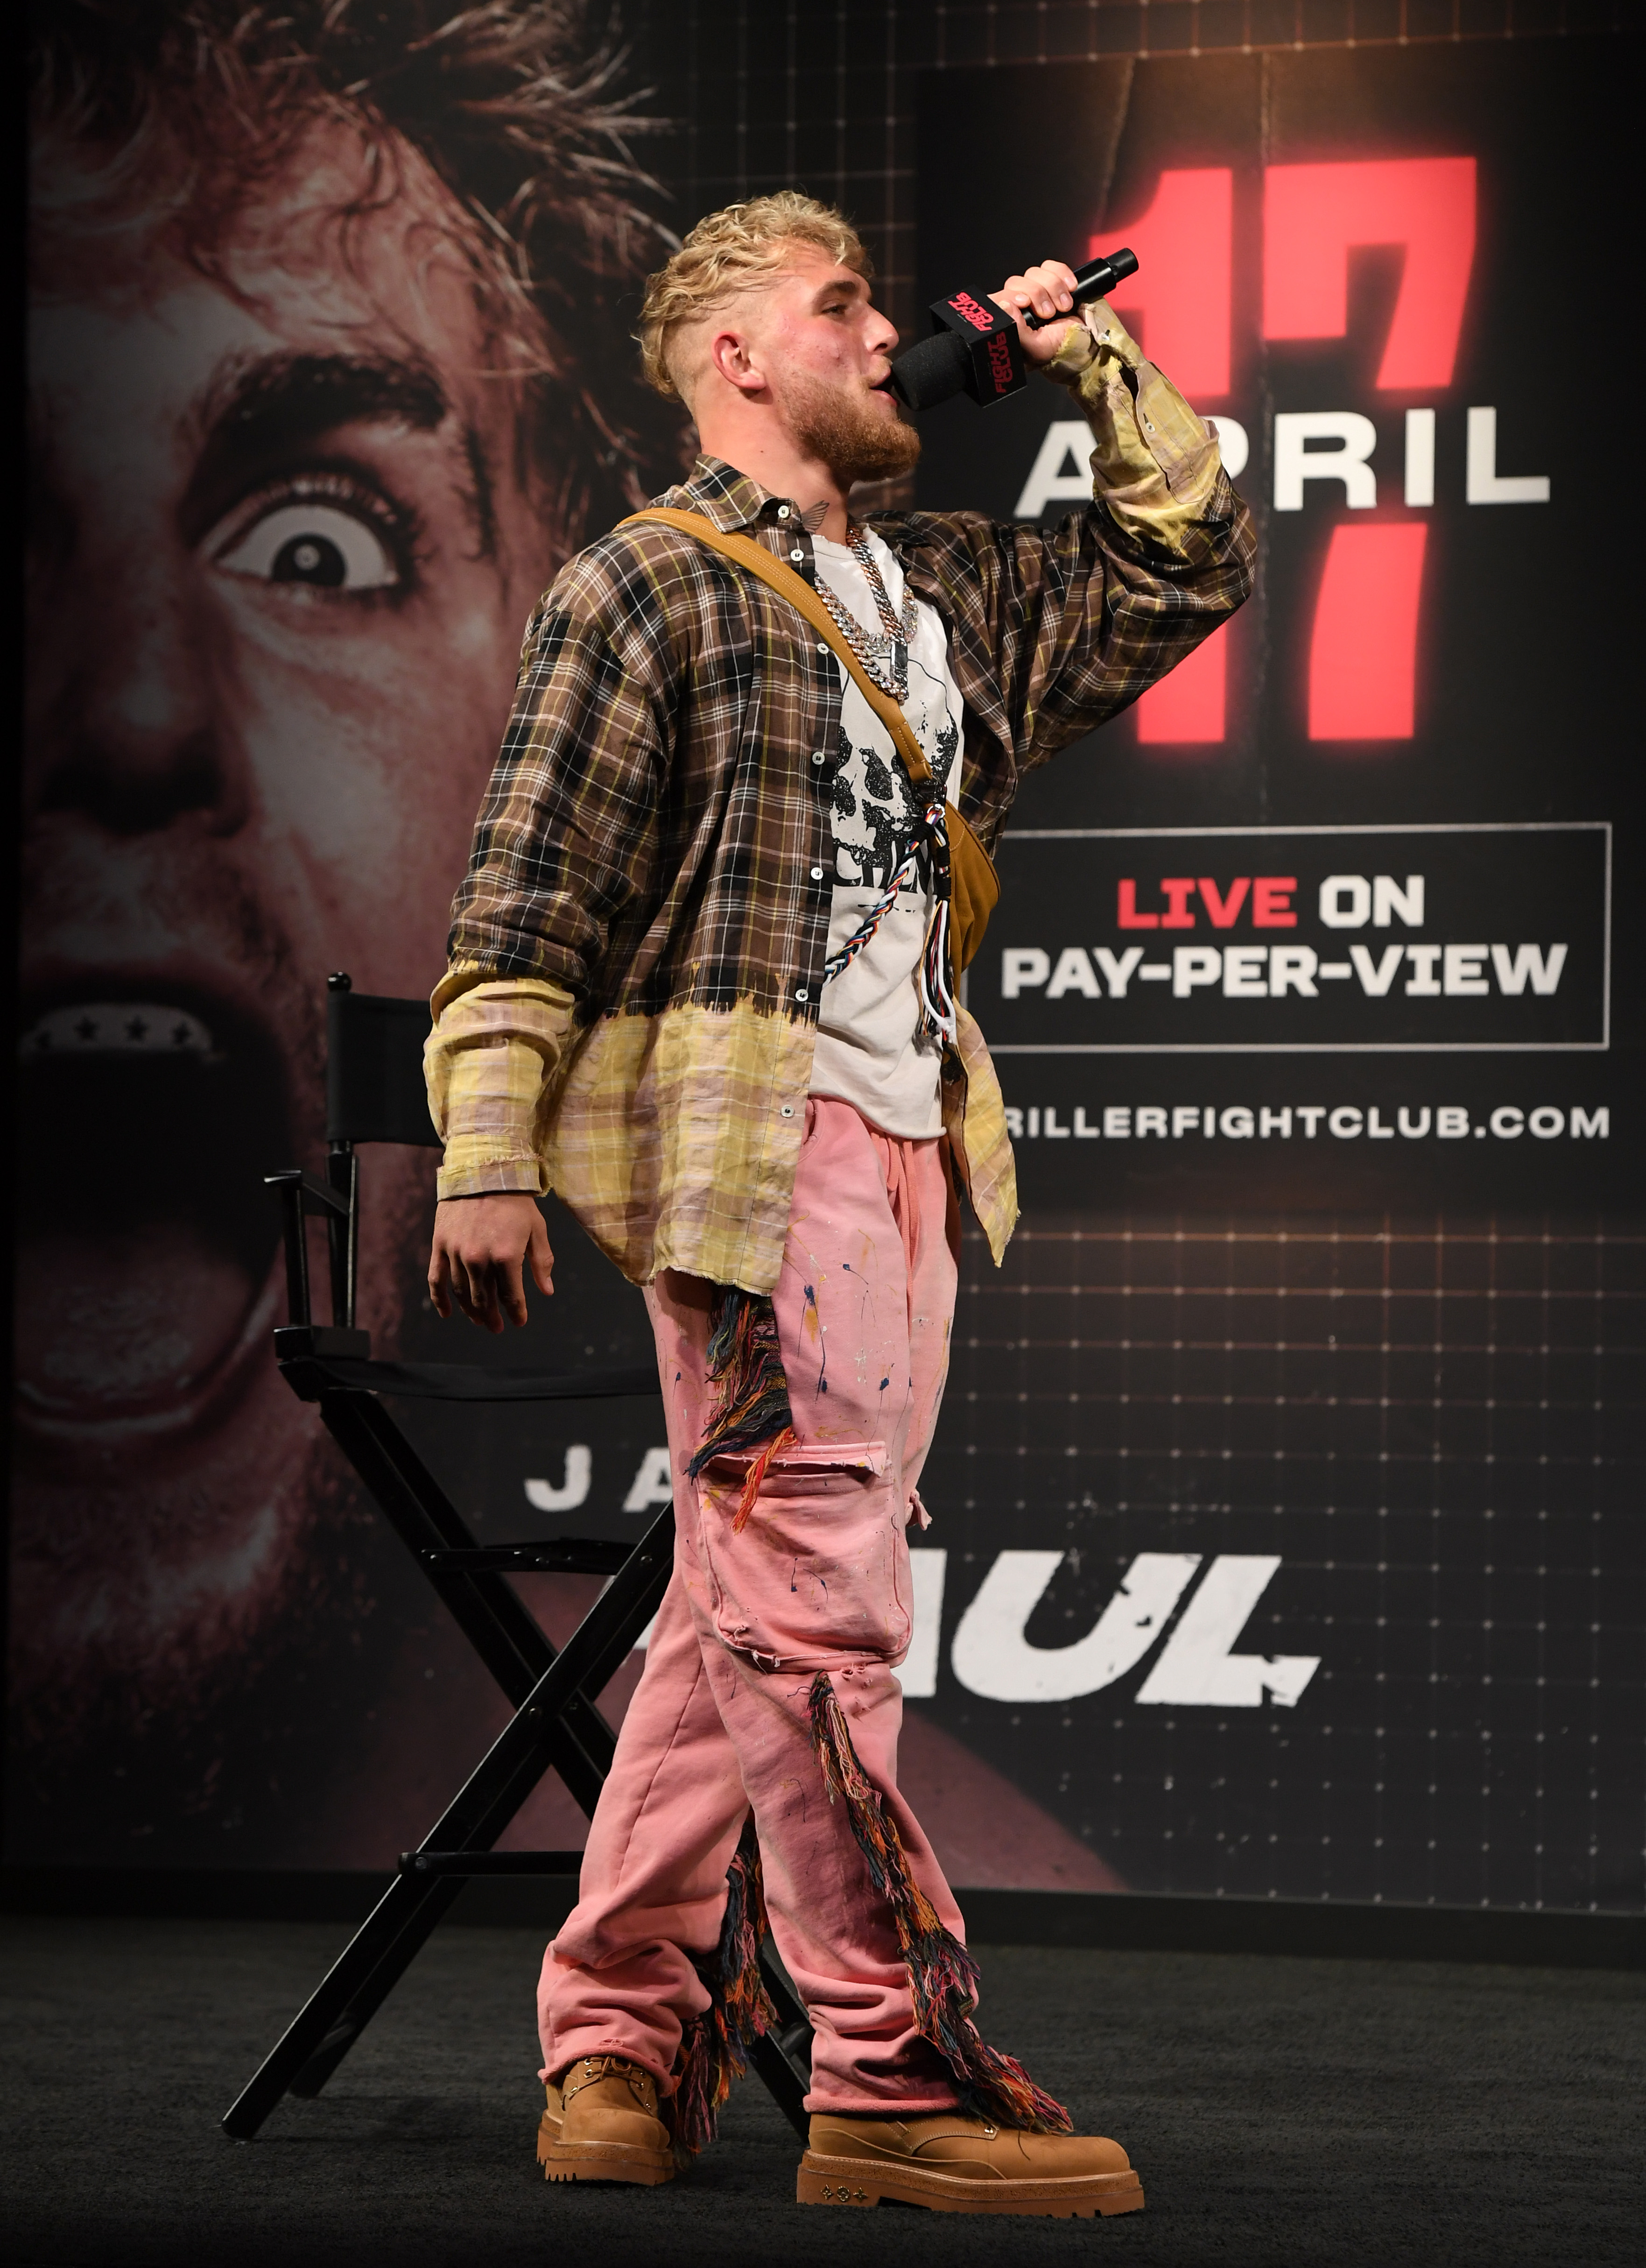 Jake Paul goads Ben Askren at the press conference for their PPV boxing event.